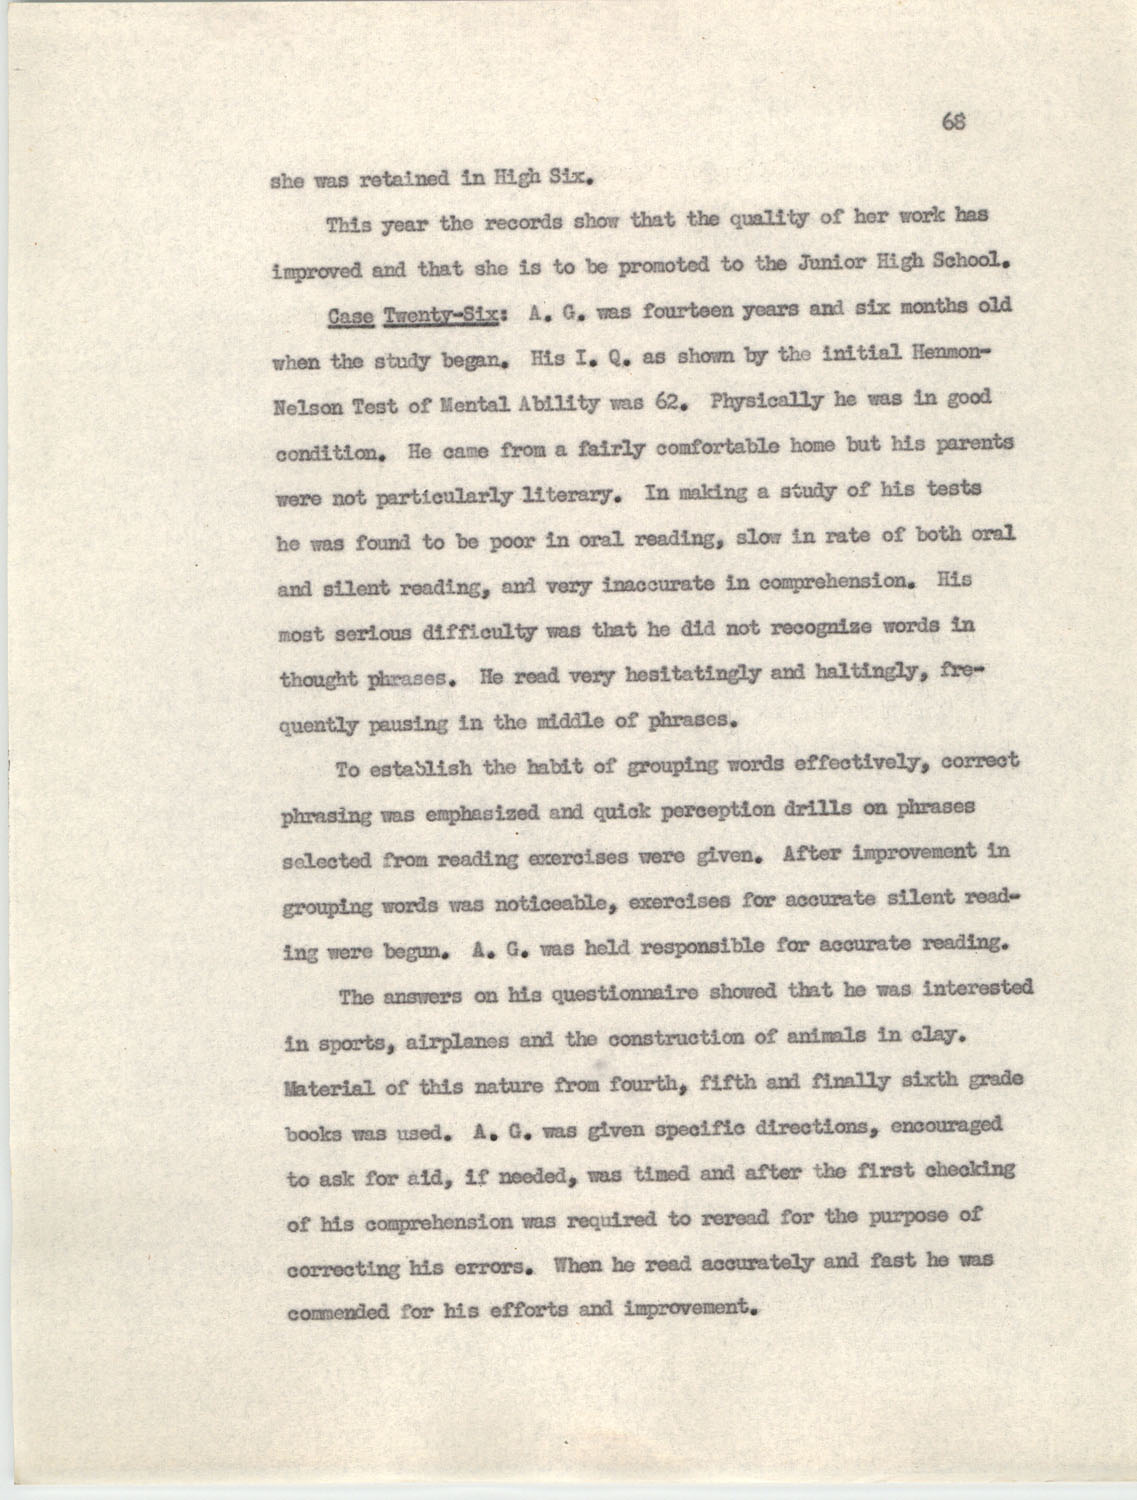 An Experiment in Individualizing Instruction in Reading in a Sixth Grade Class, 1946,  Page 68